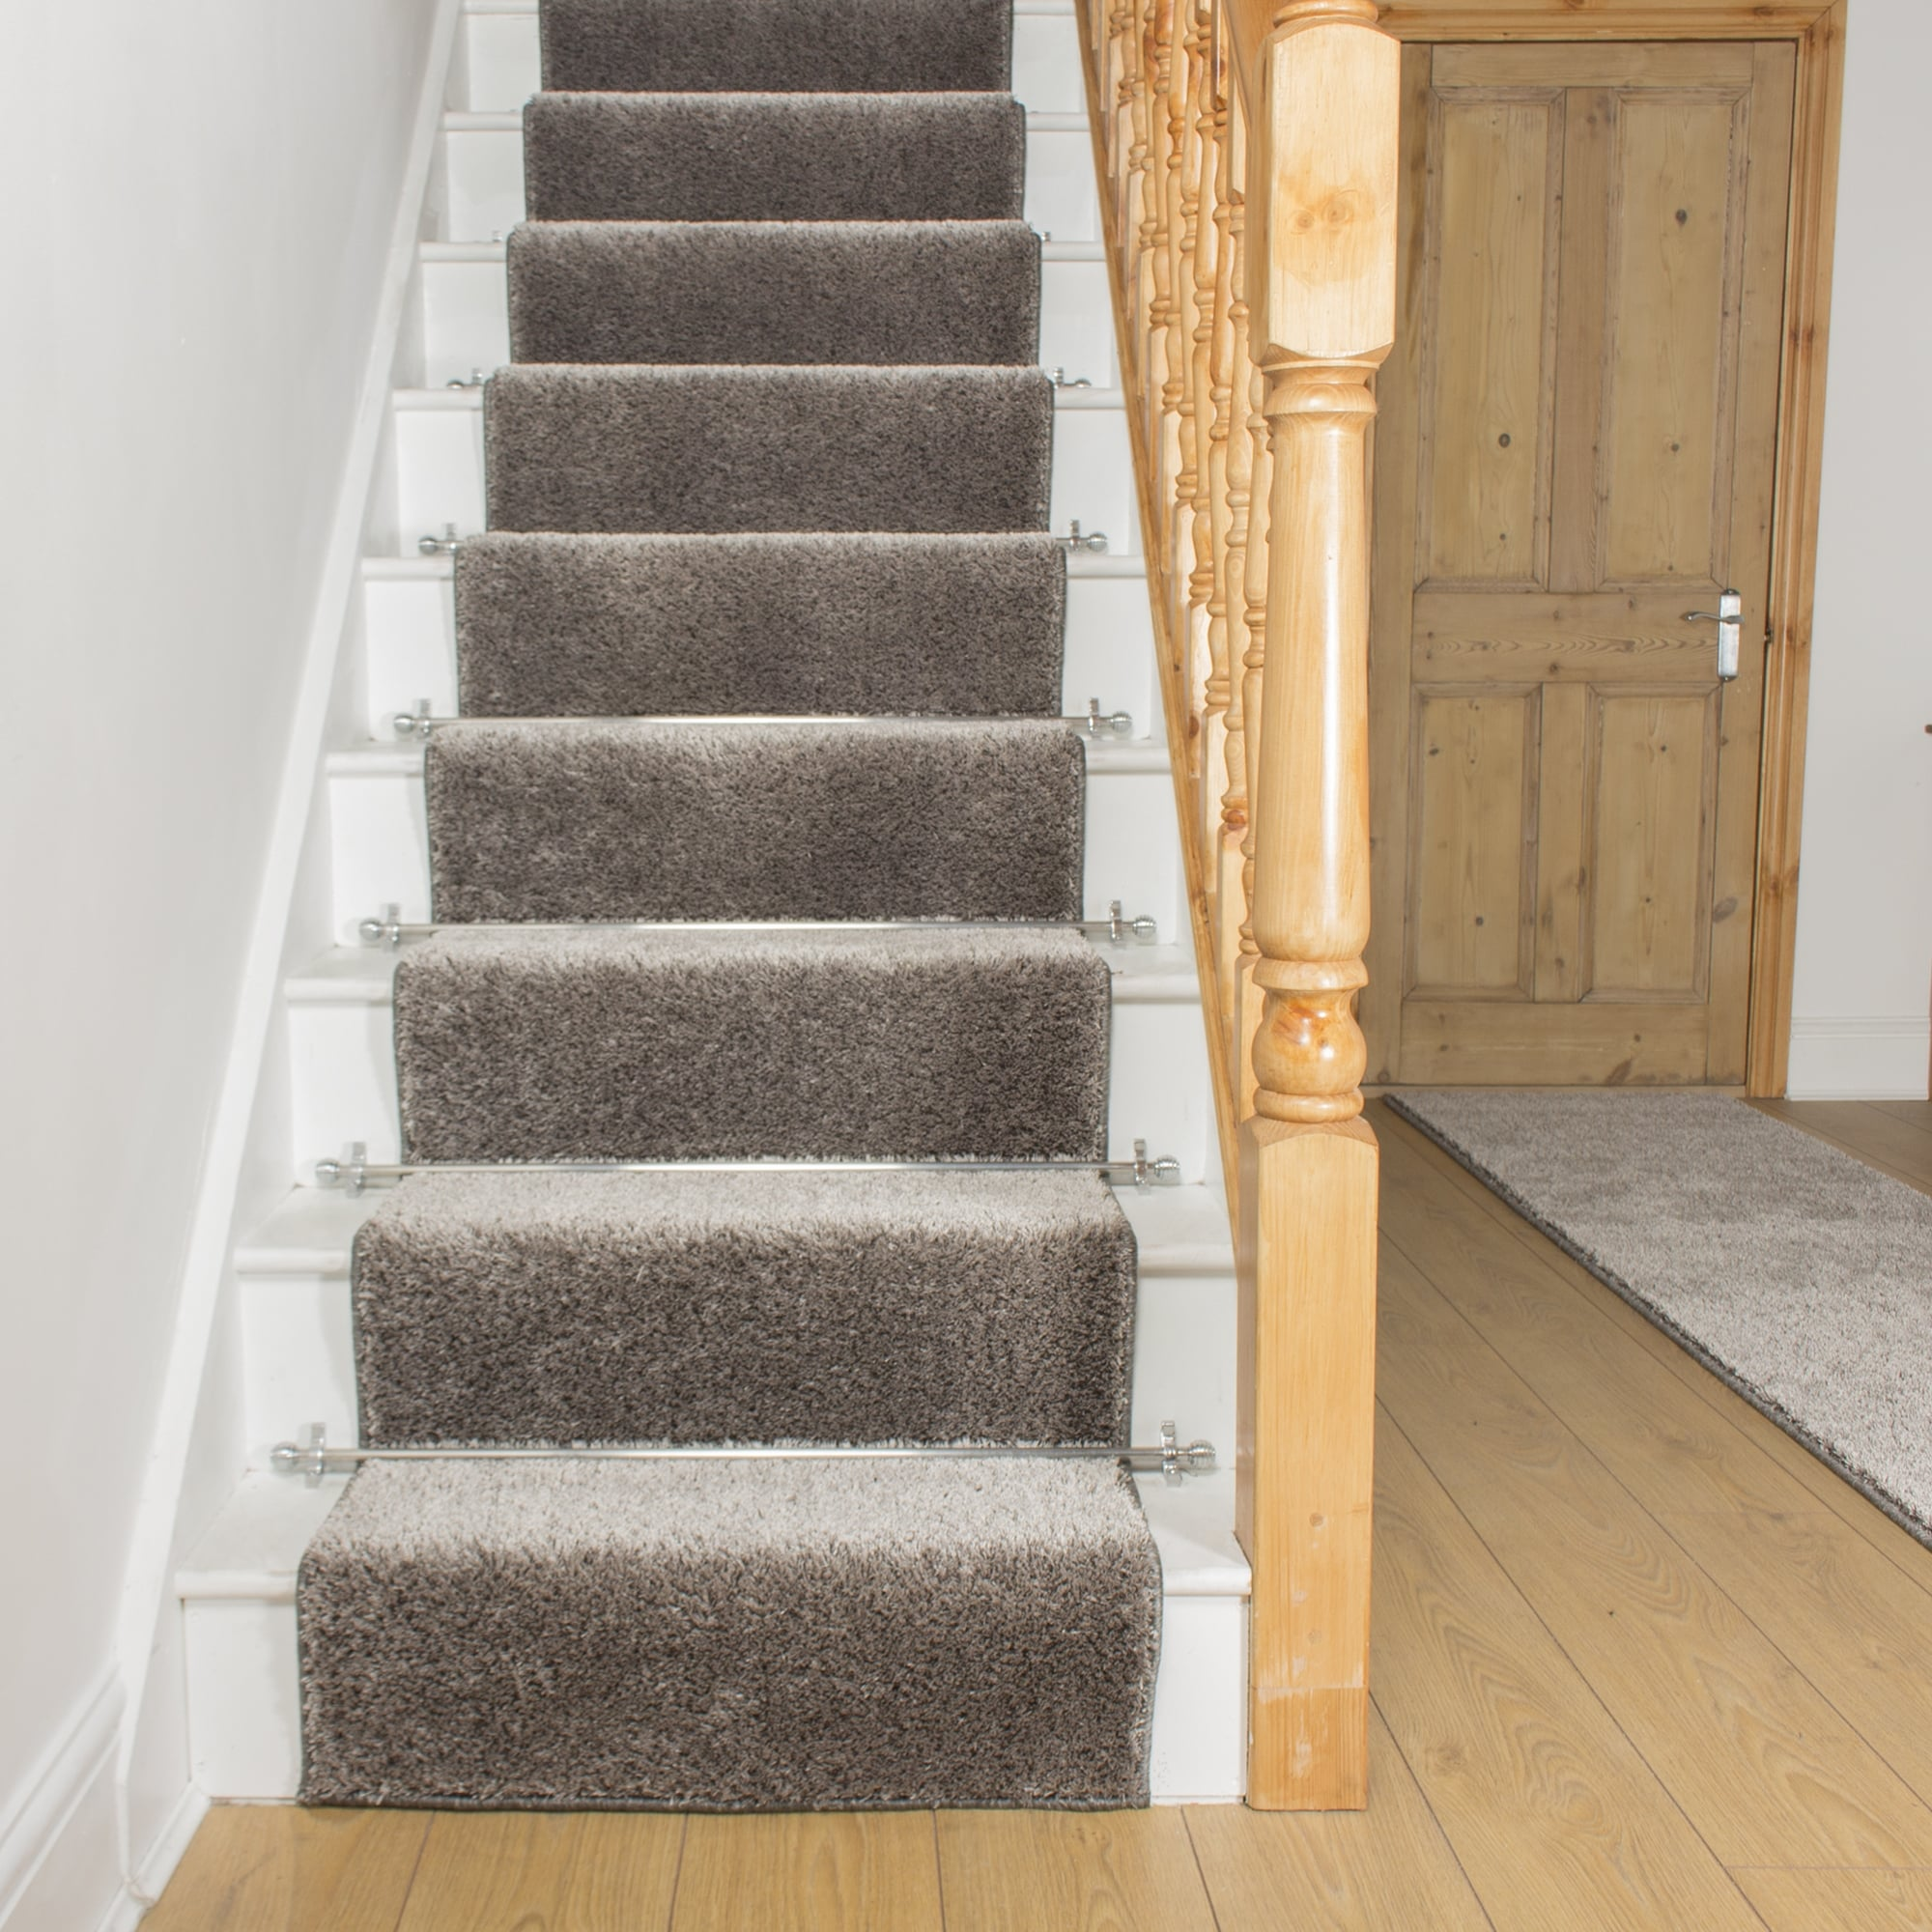 stair runner shaggy silver grey YTABDQC